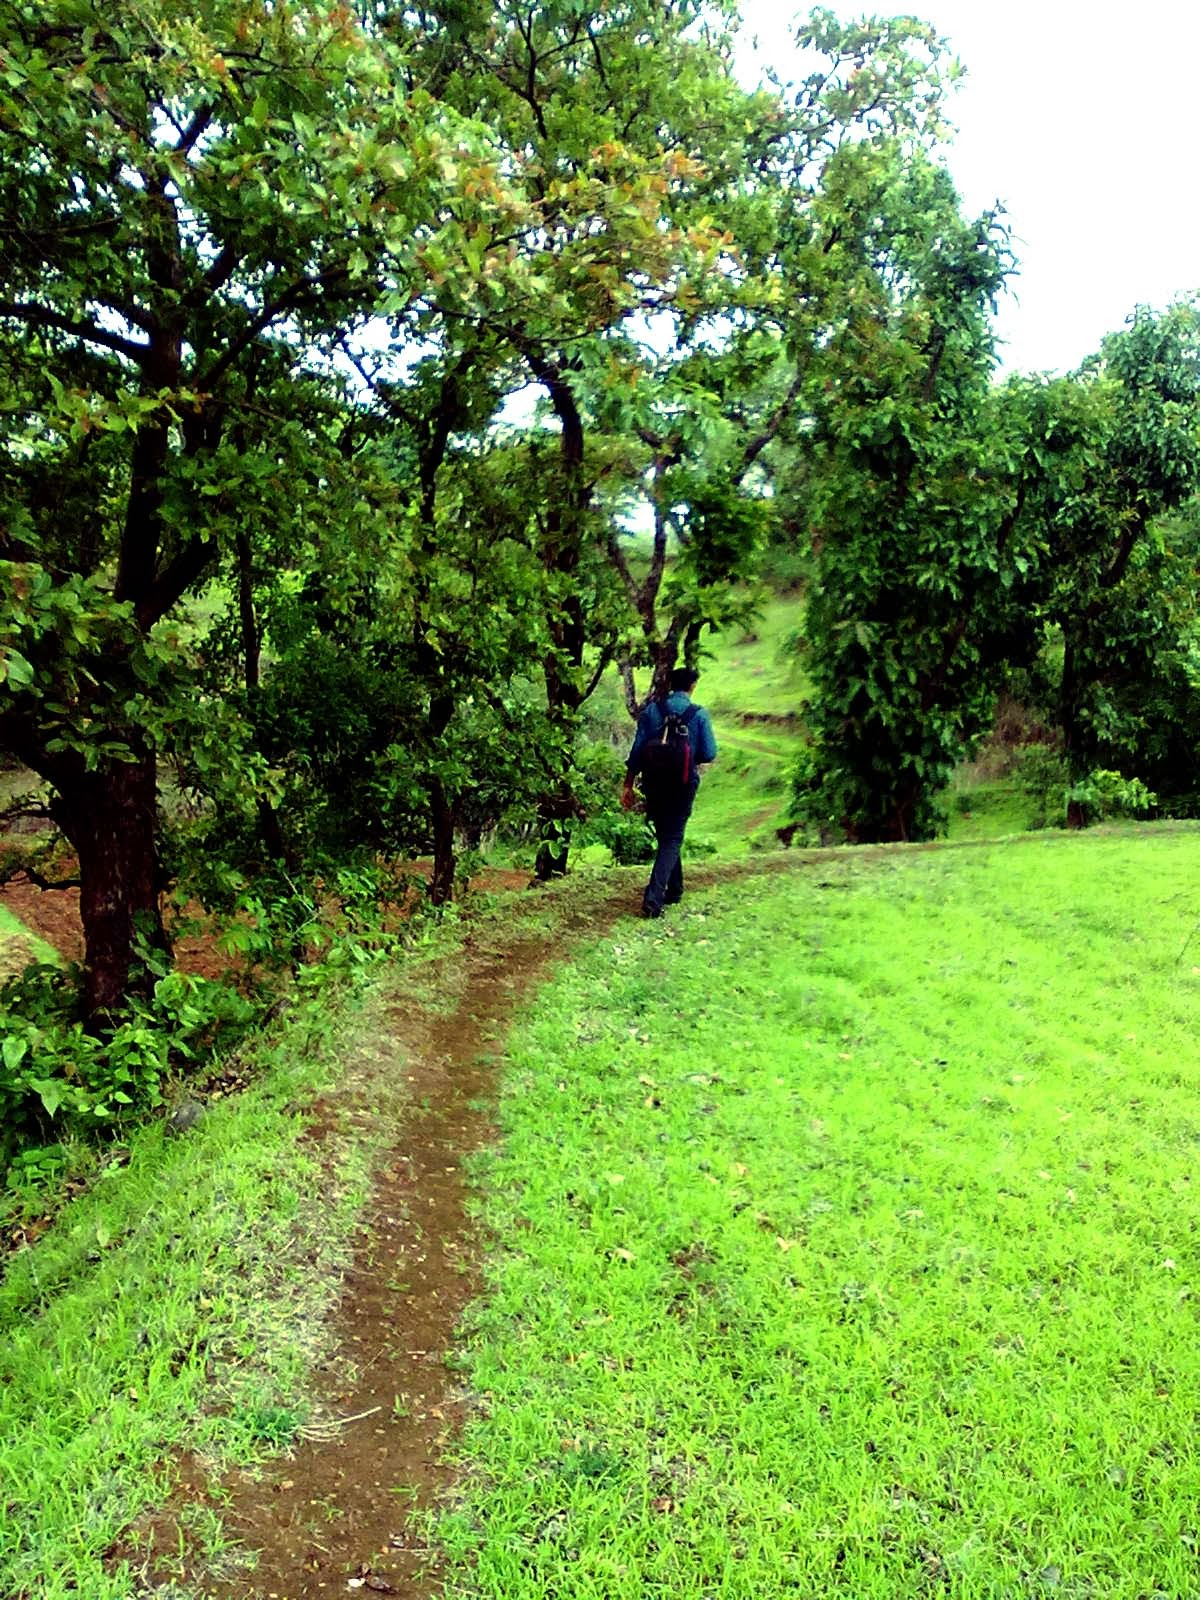 Greenery in Bhandardara